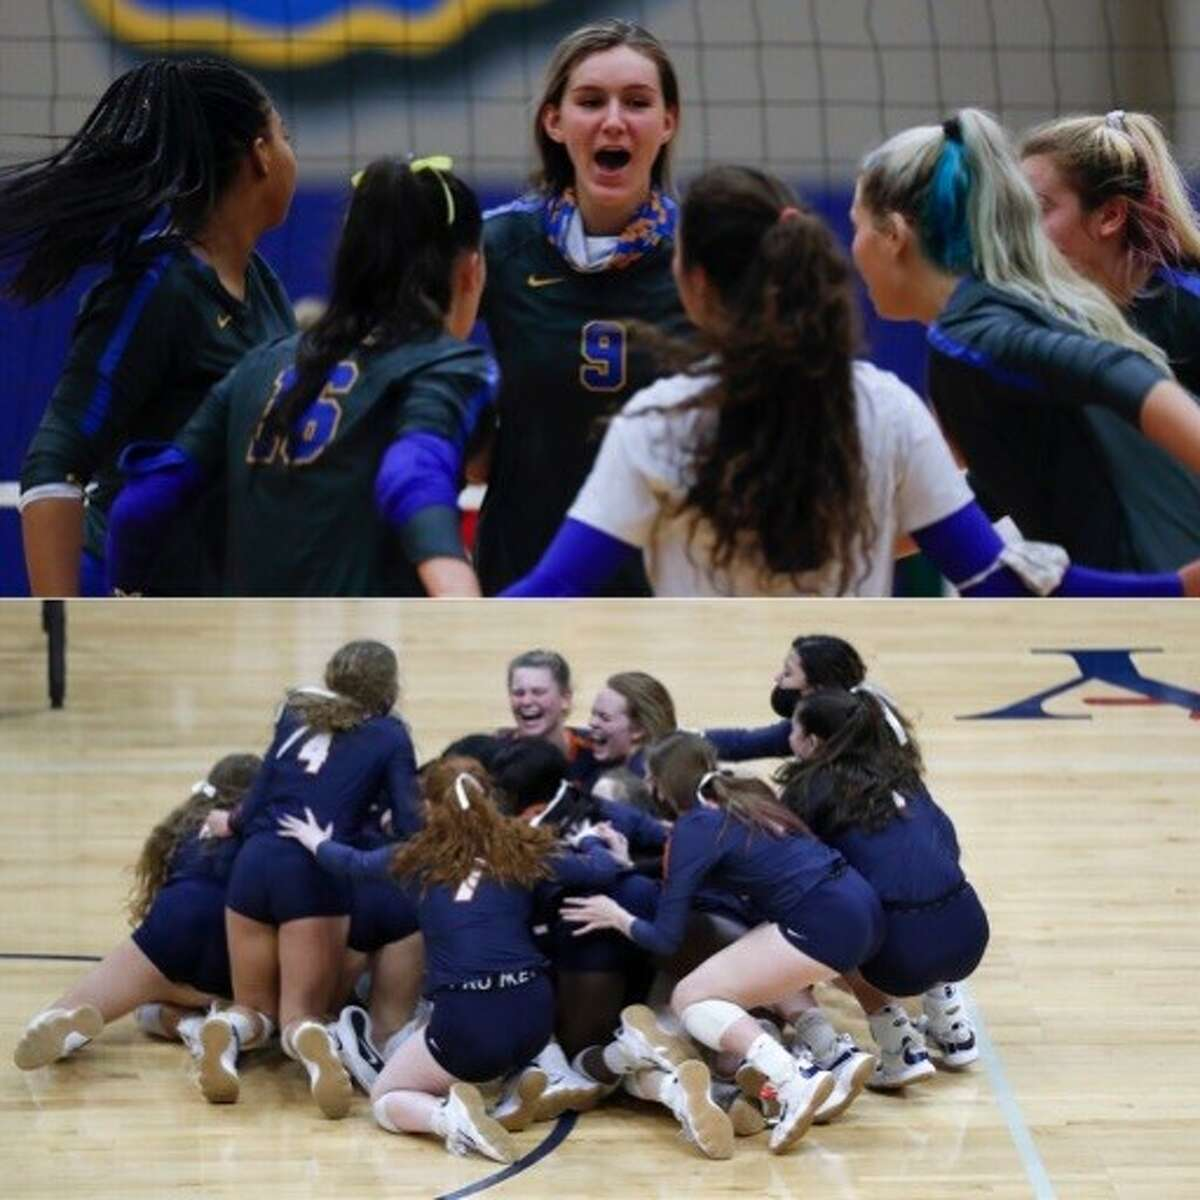 Klein (top) and Seven Lakes will face off for the Class 6A volleyball championship on Saturday in Garland.